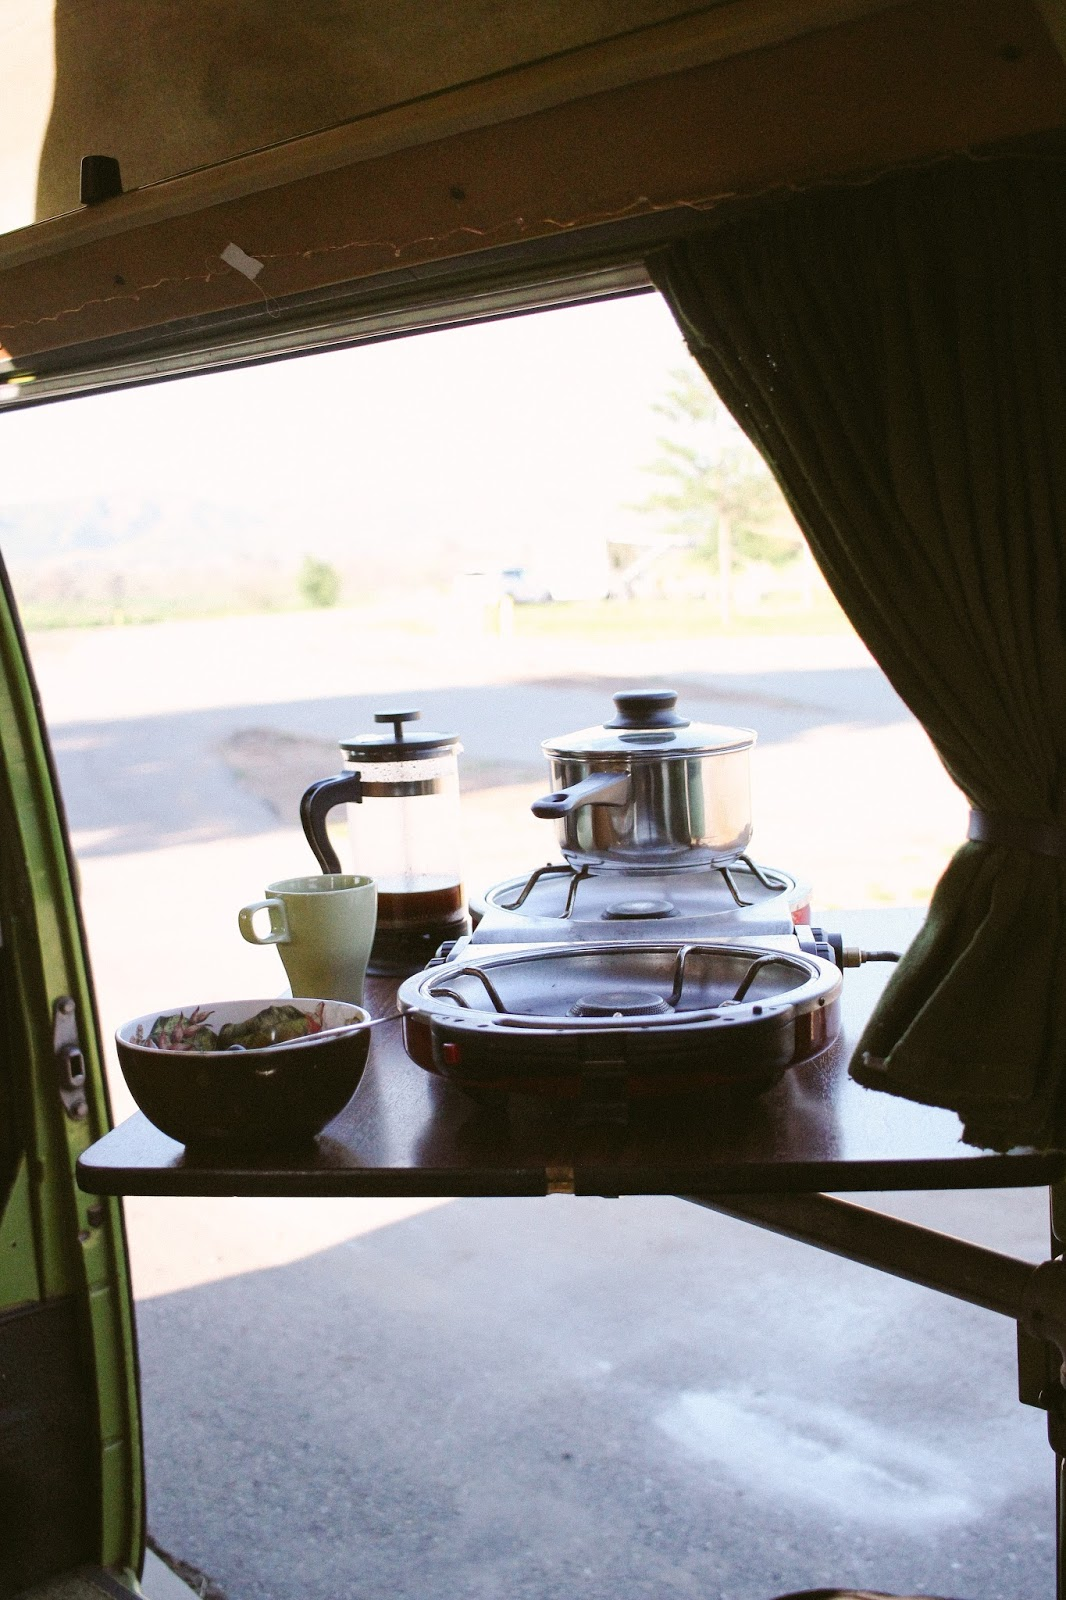 cooking in a VW van